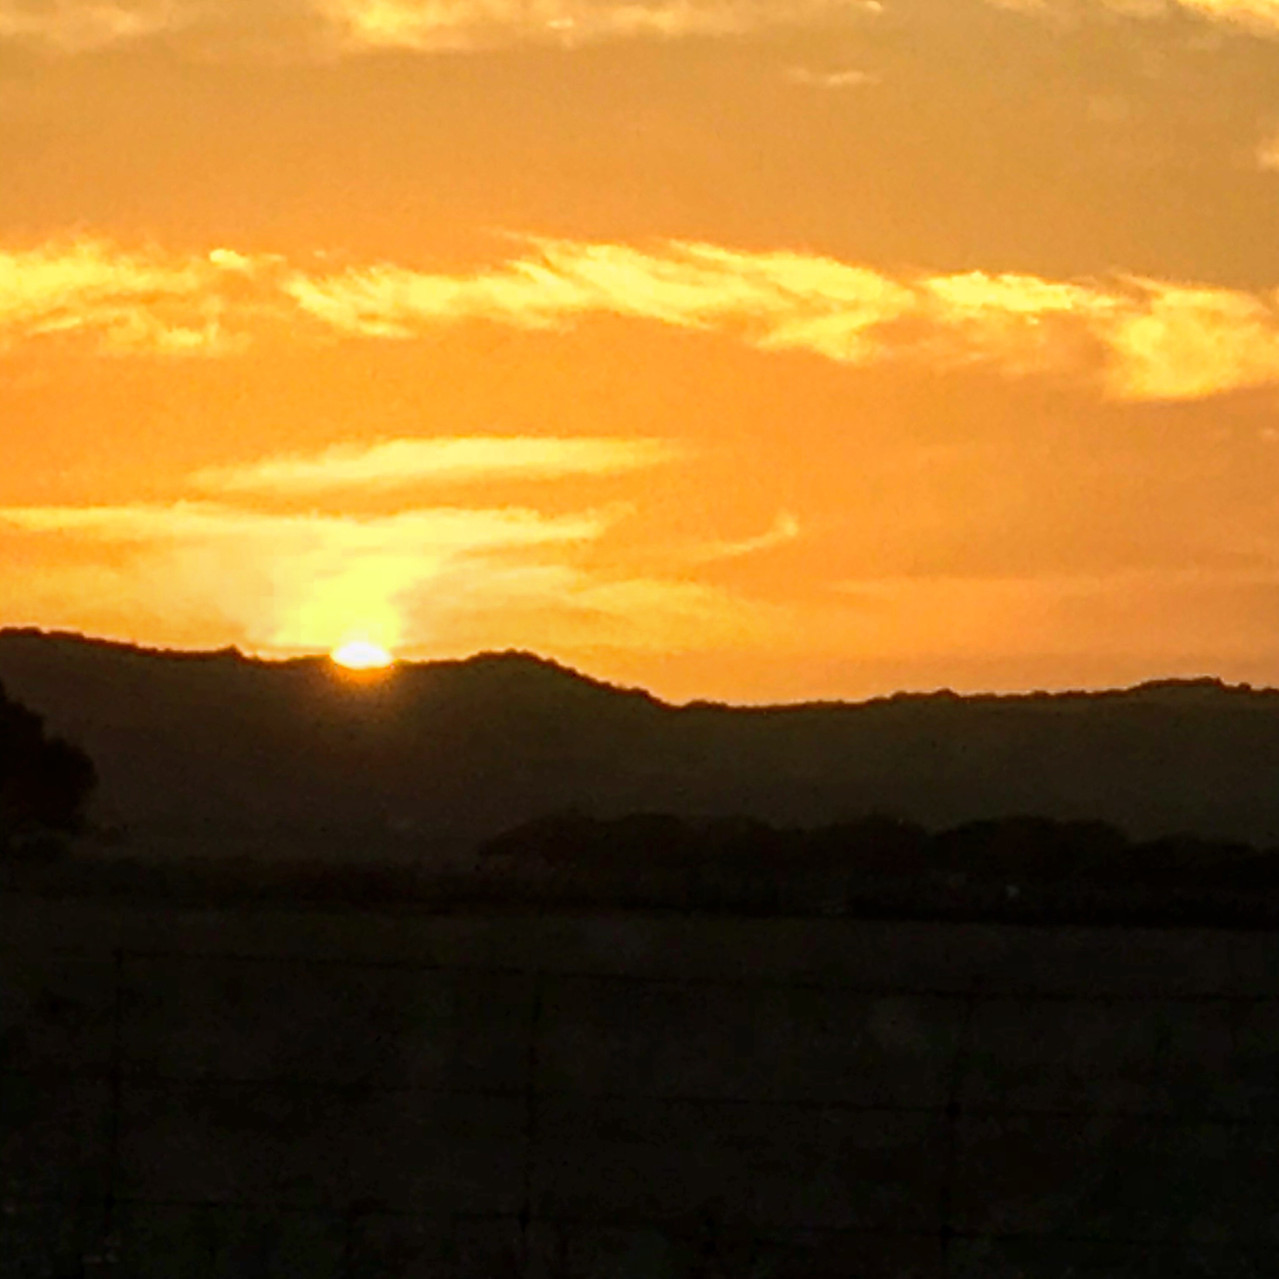 Typical outback sunset